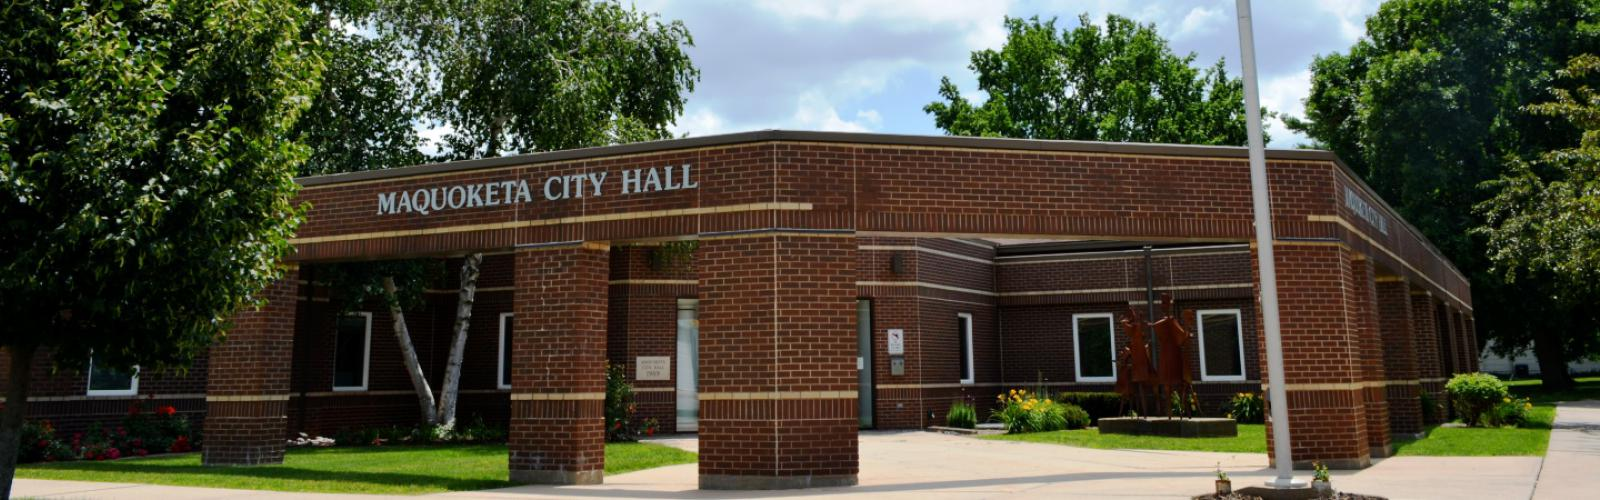 Exterior of Maquoketa City Hall building